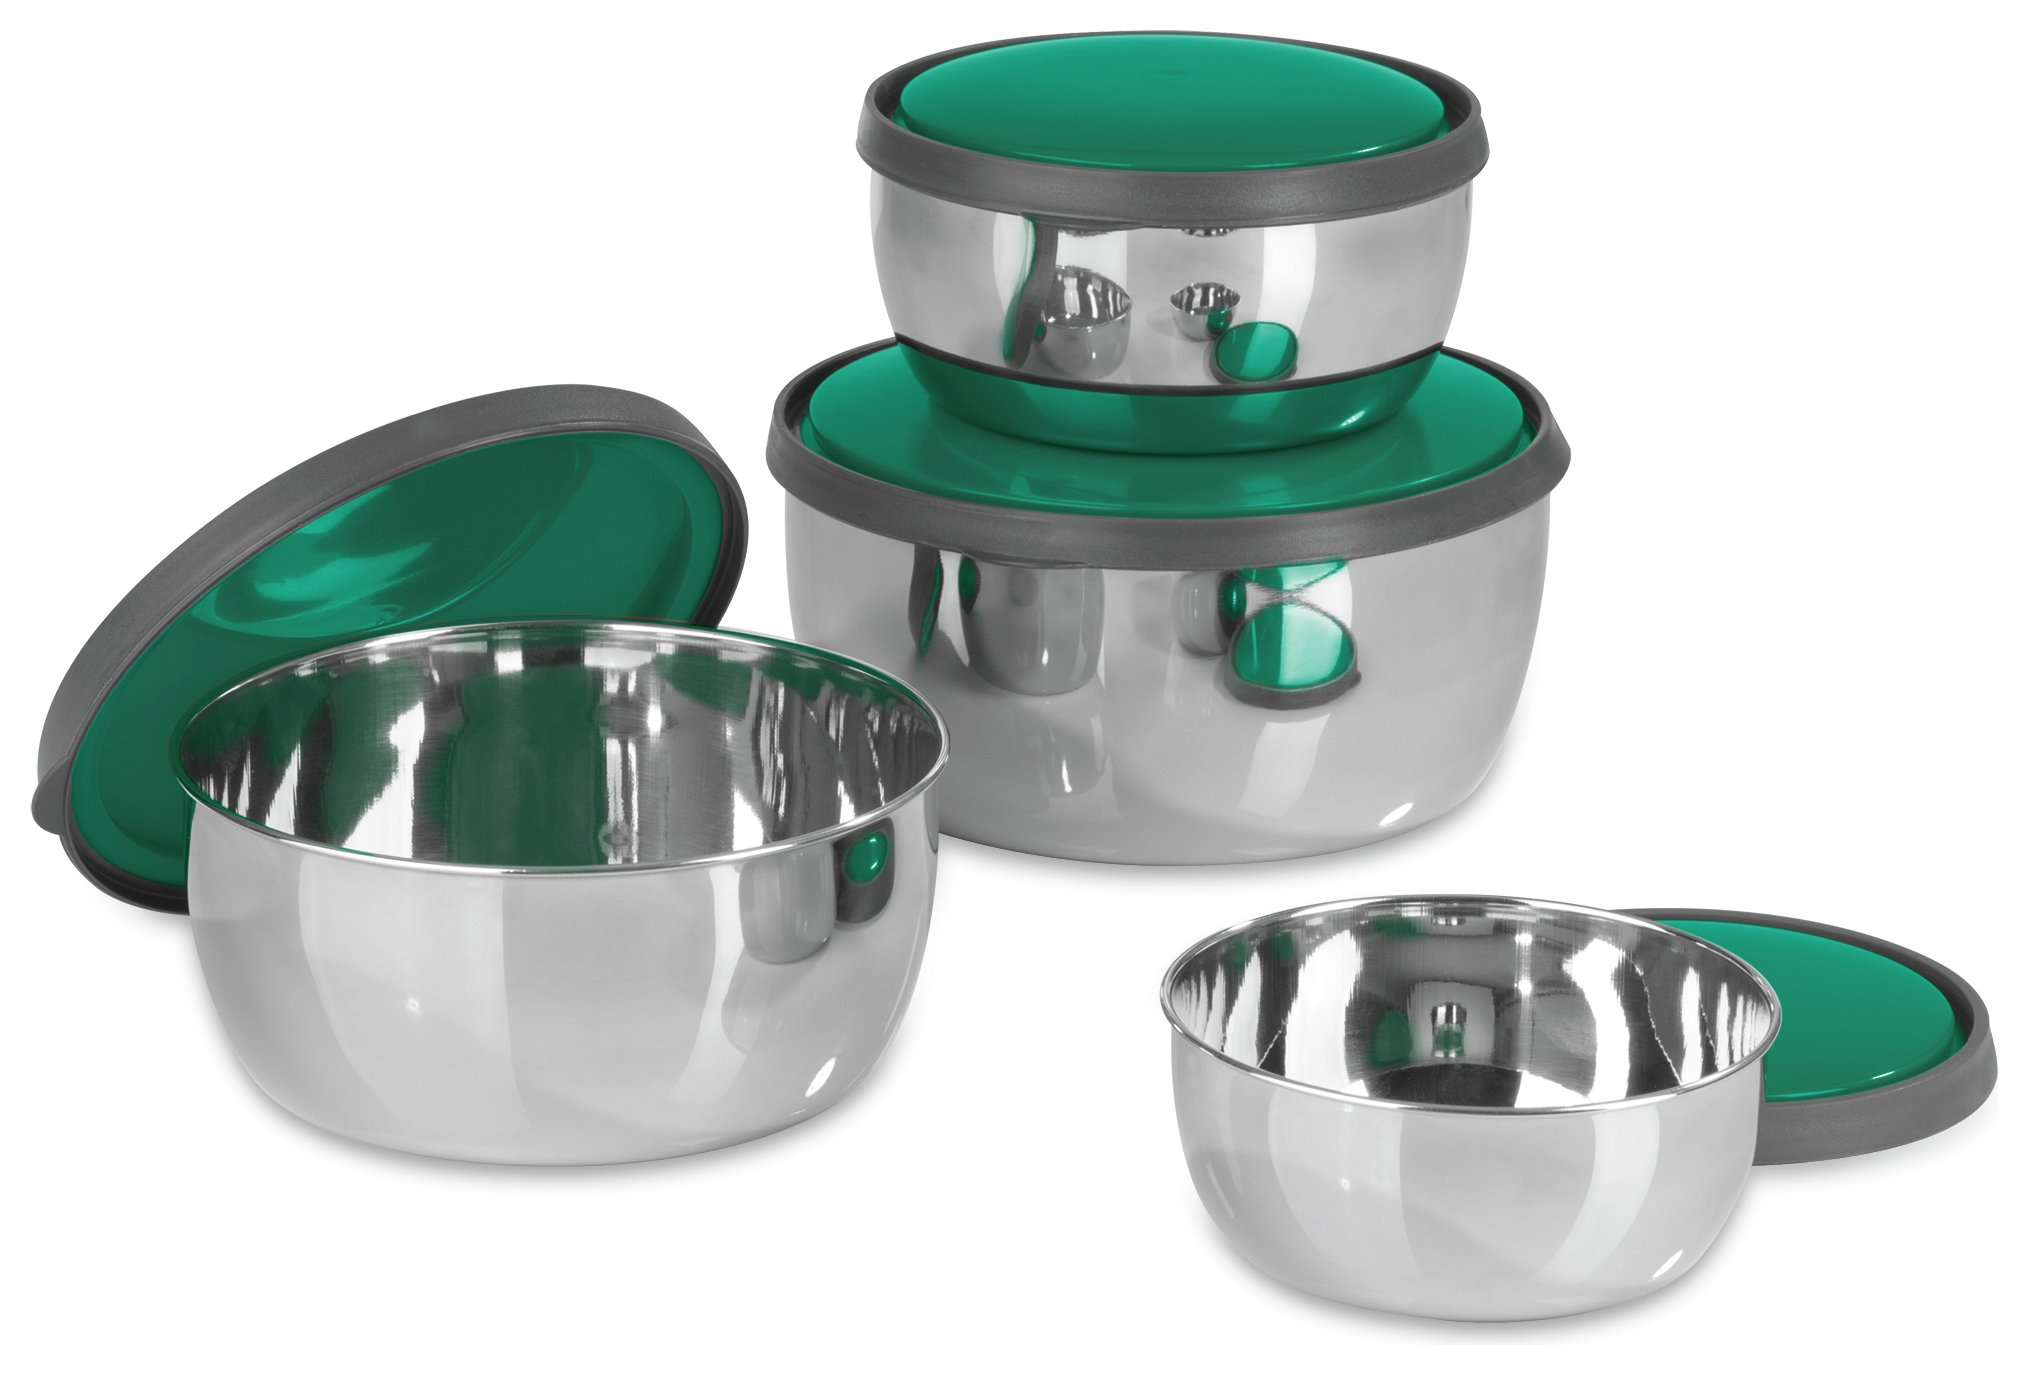 Image of GOURMETmaxx 4 Piece Stainless Steel Bowl Set